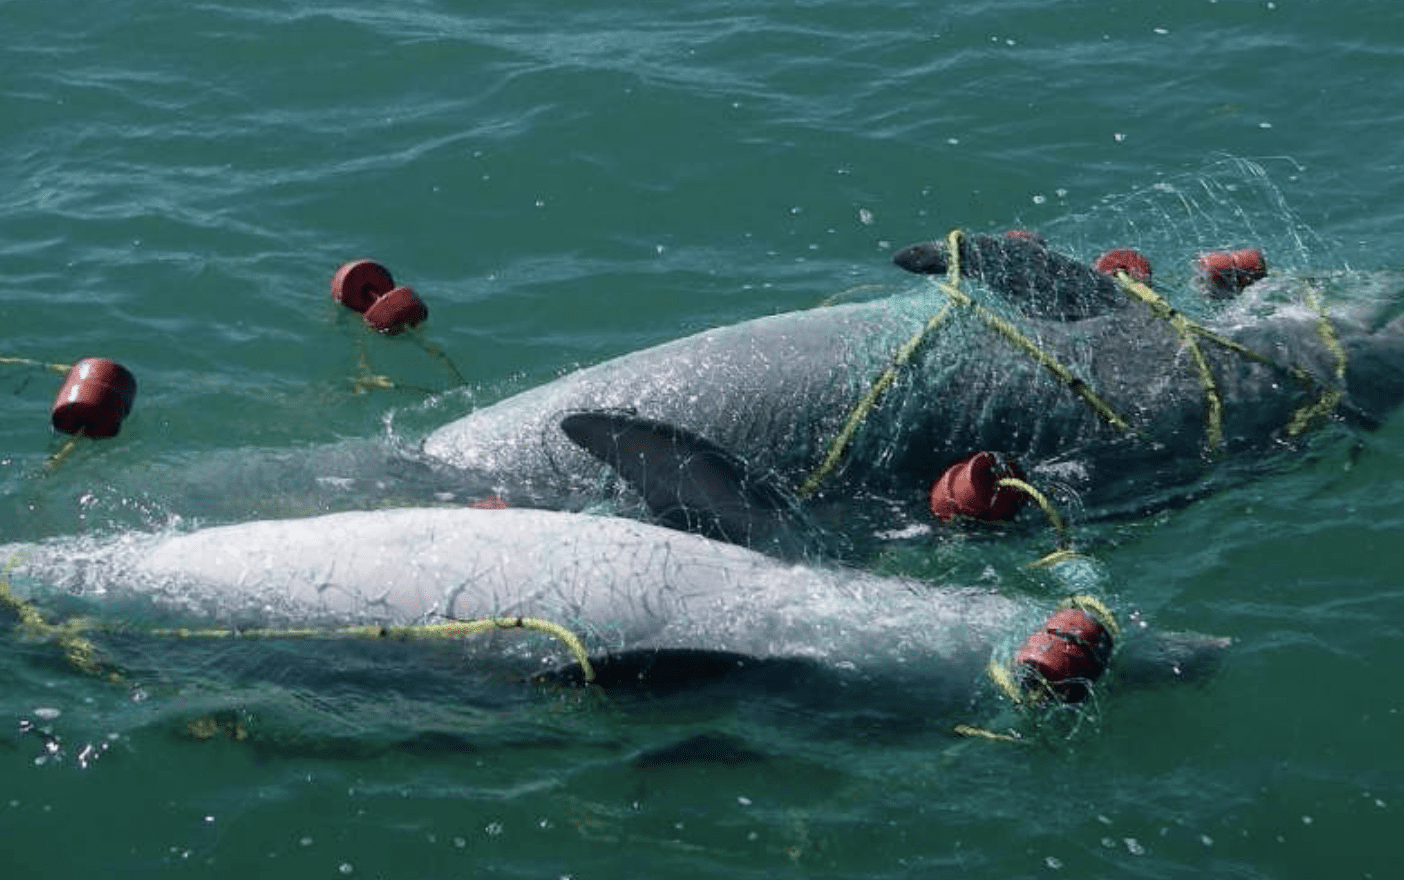 Seaspiracy Exposes-The-Commercial-Fishing-Industry-Dolphin-Killings